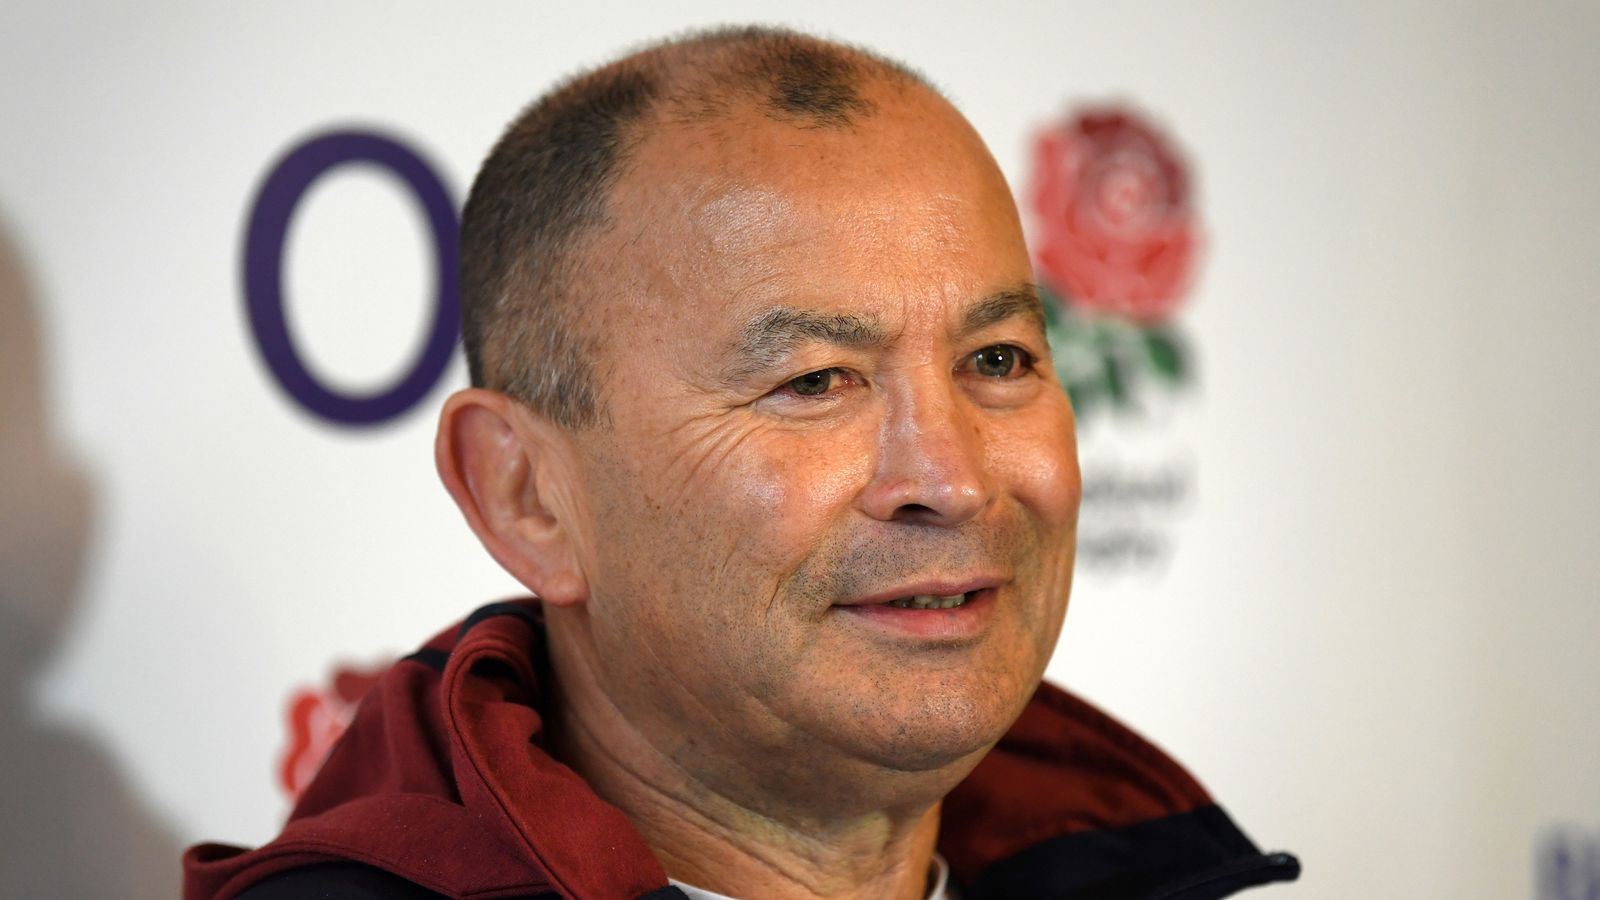 Eddie Jones: England head coach apologises to reporter after 'half-Asian' joke